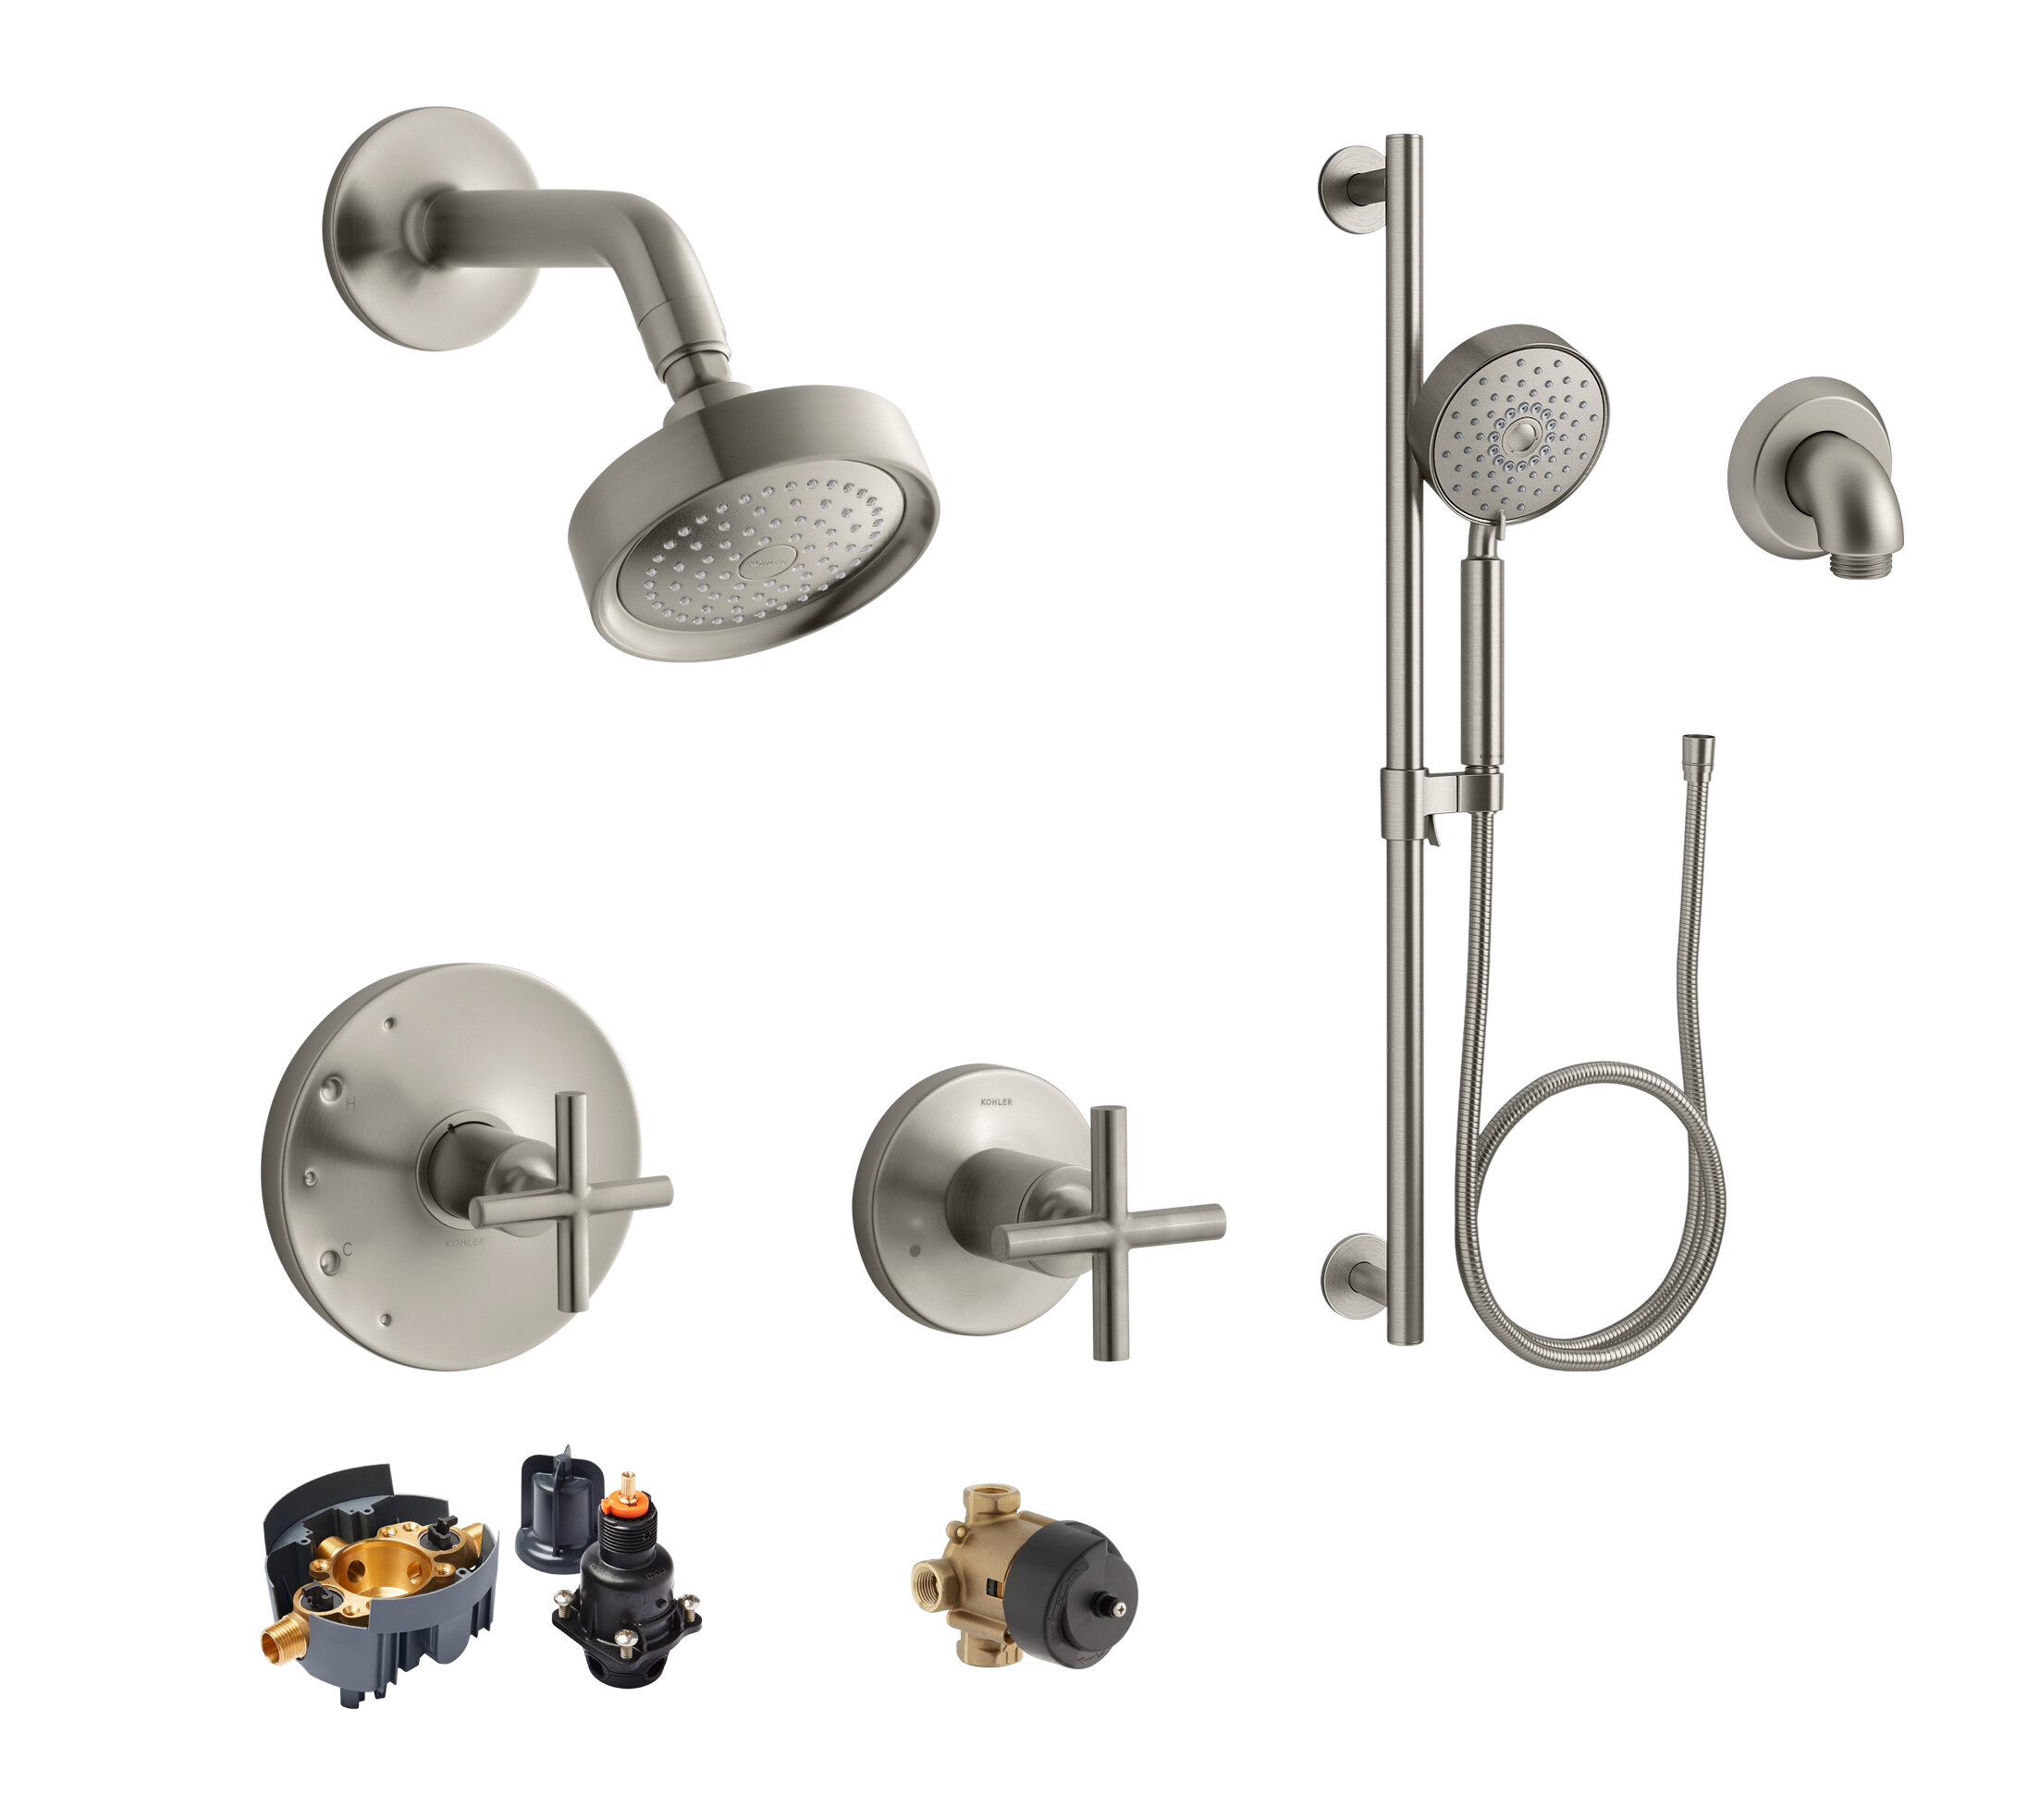 Kohler Purist Rite Temp Showering Kit With Multi Function Handshower And Slidebar